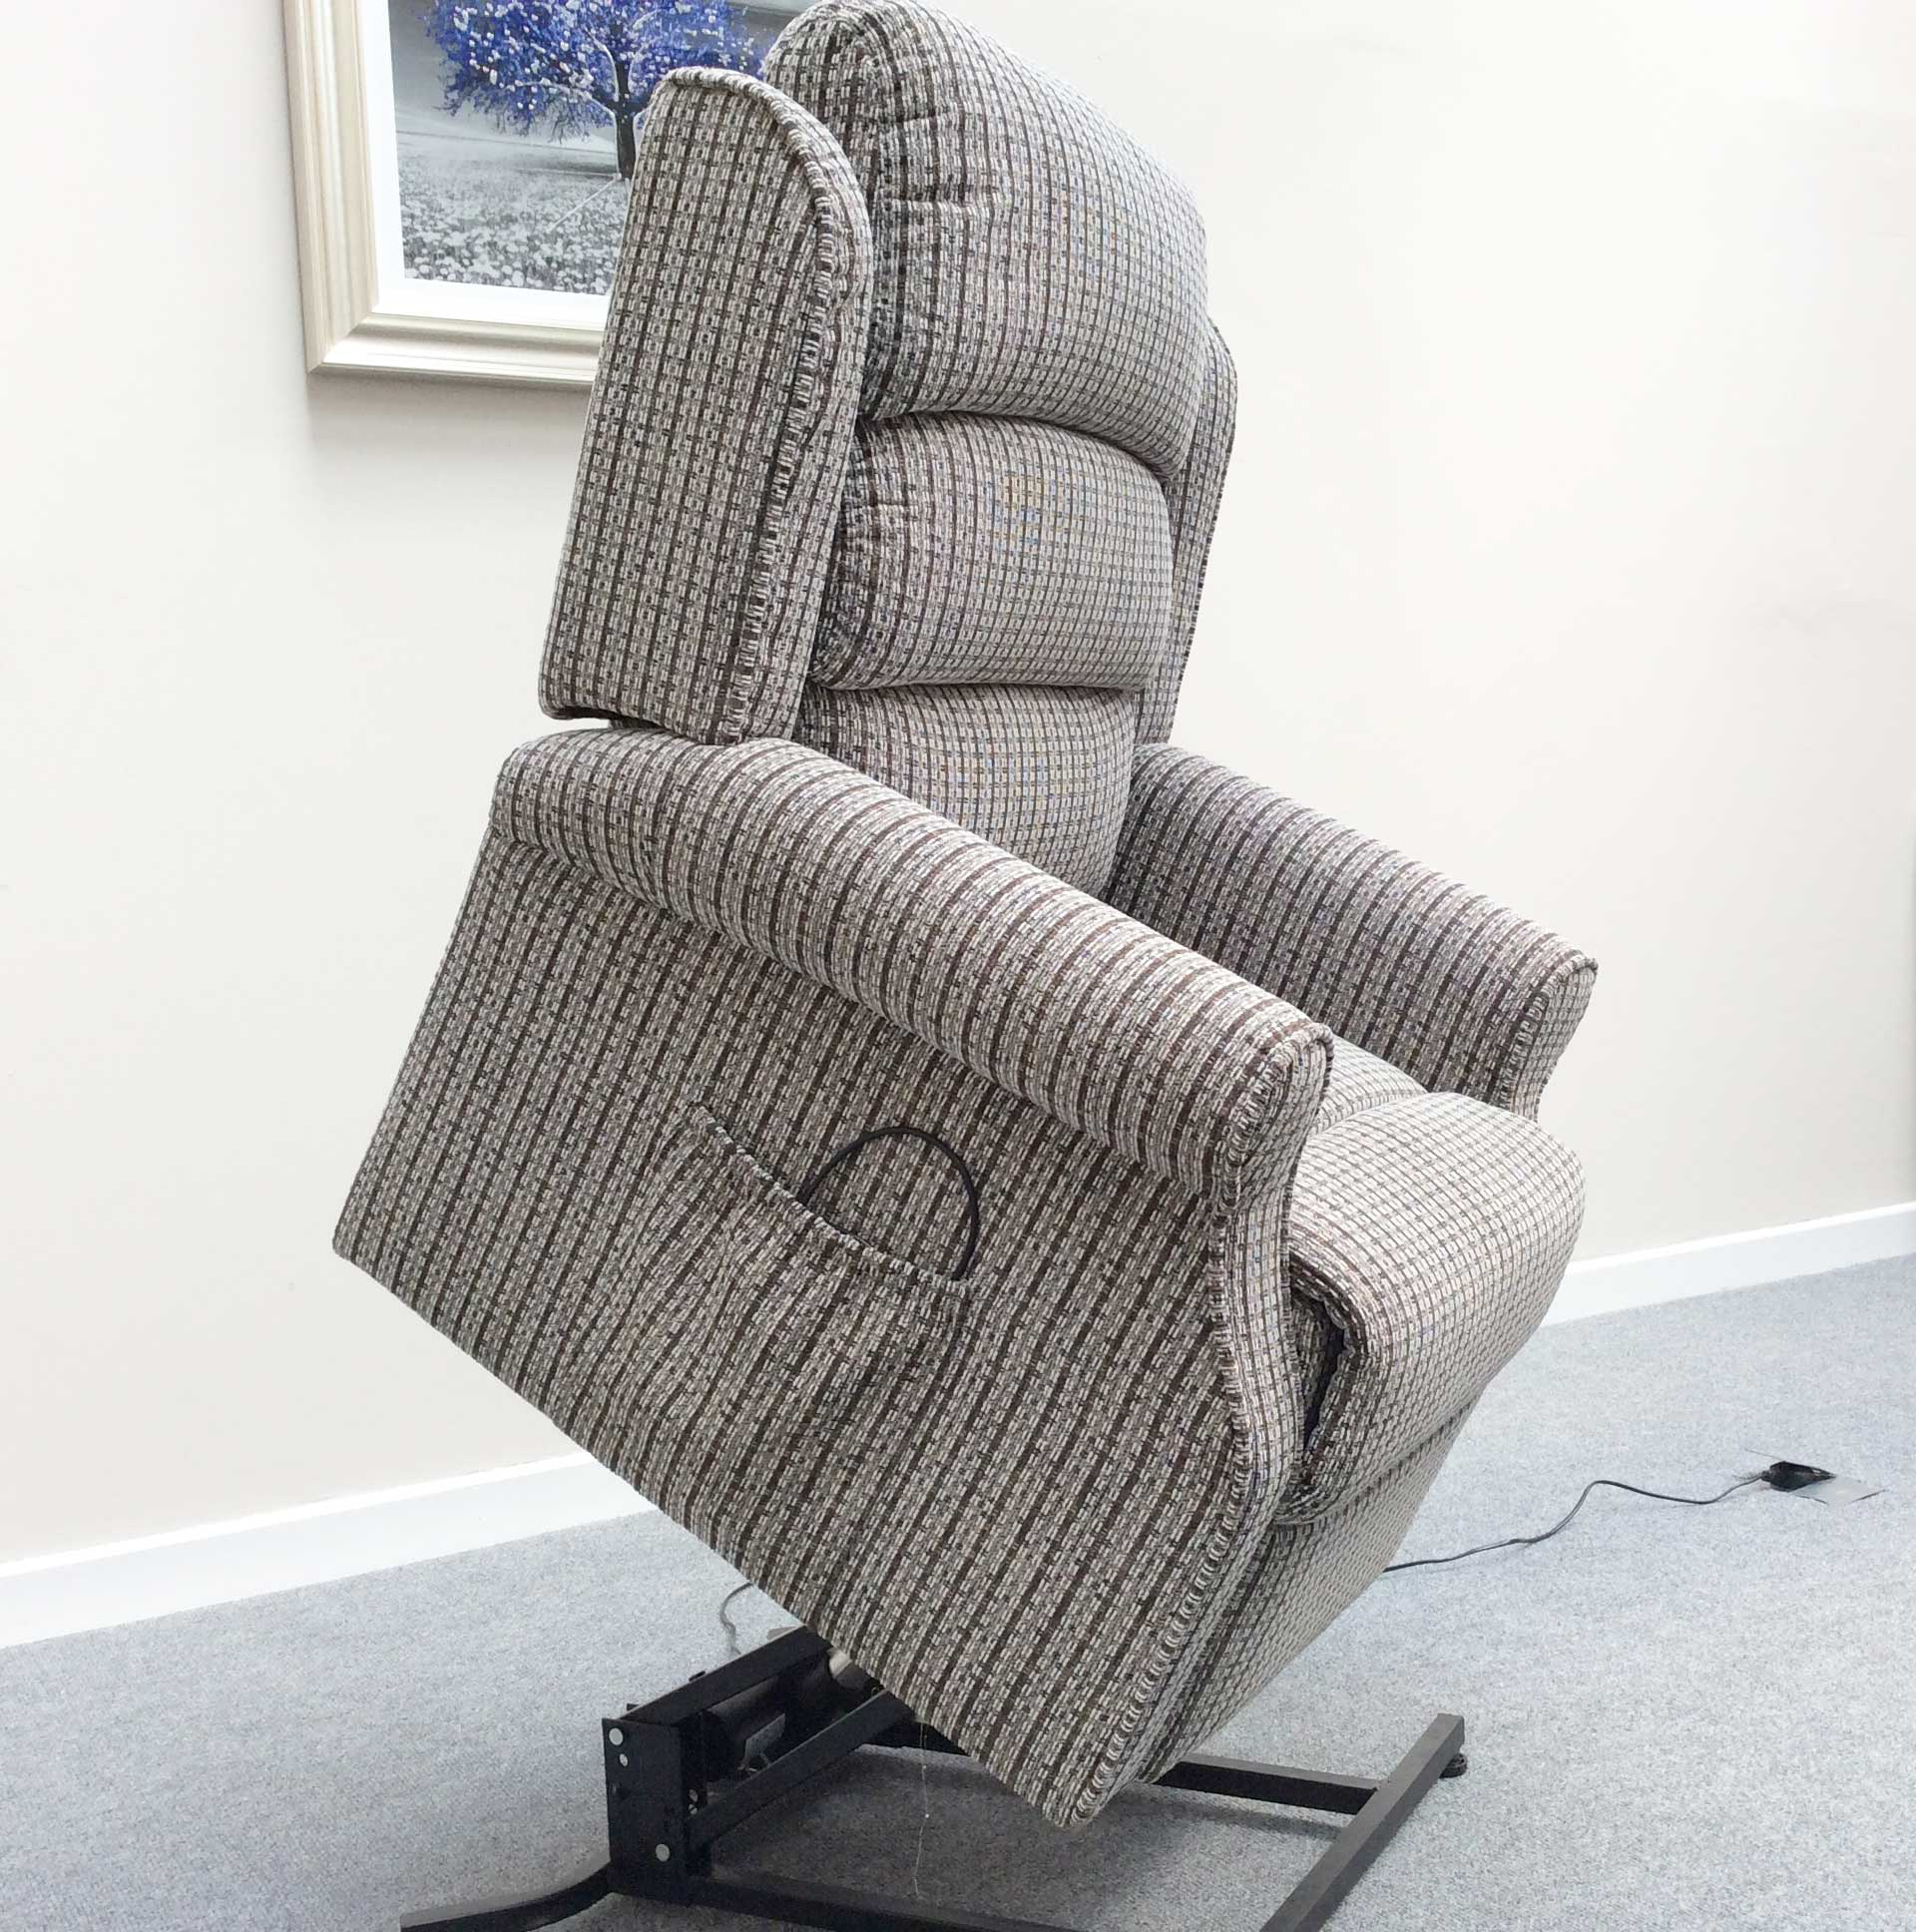 wyn01 | Electric Armchairs | Relaxing Chairs | furniture ...